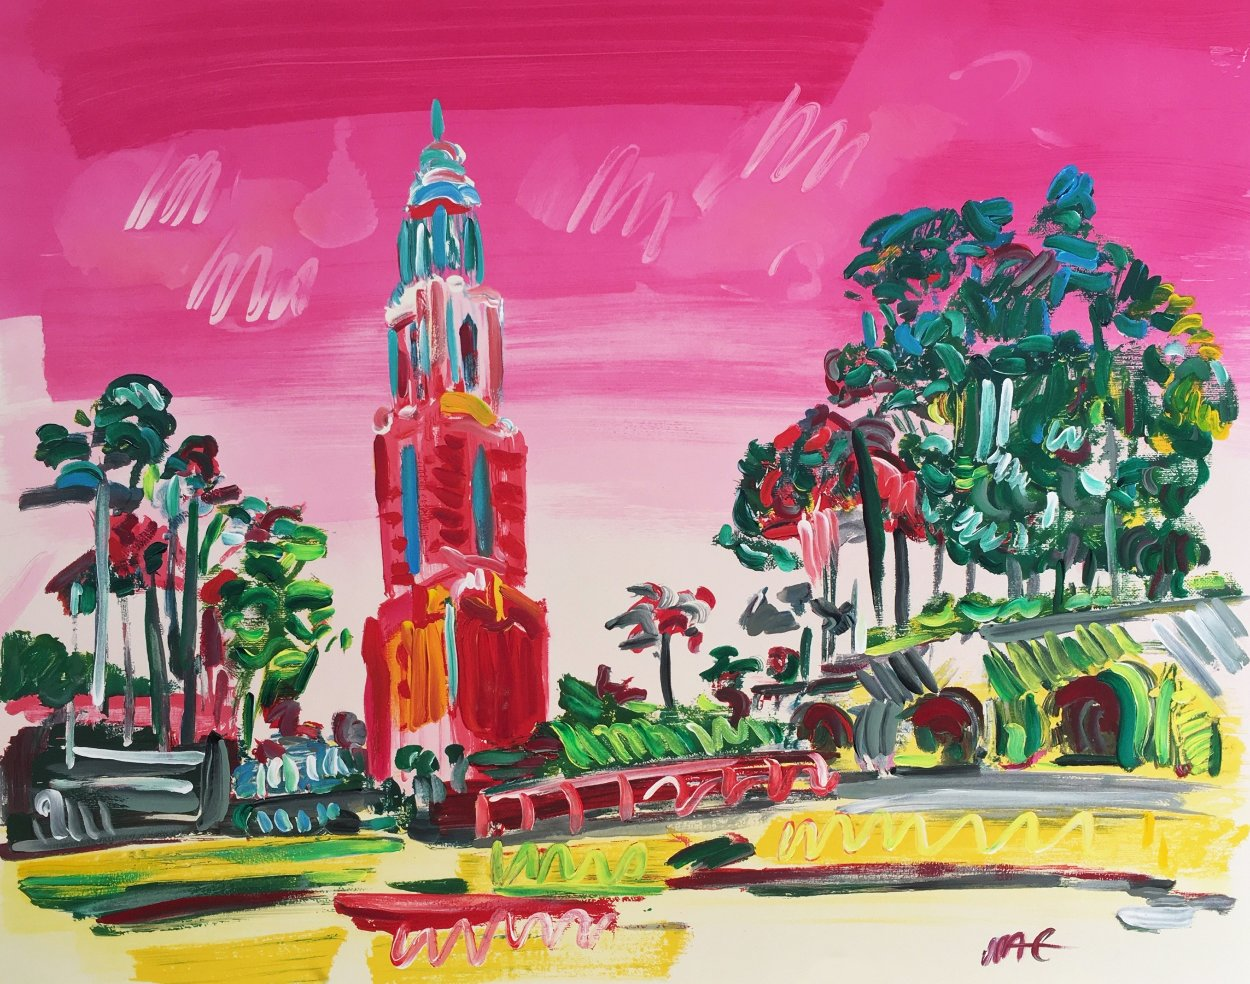 Balboa Park Unique  Works on Paper (not prints) by Peter Max